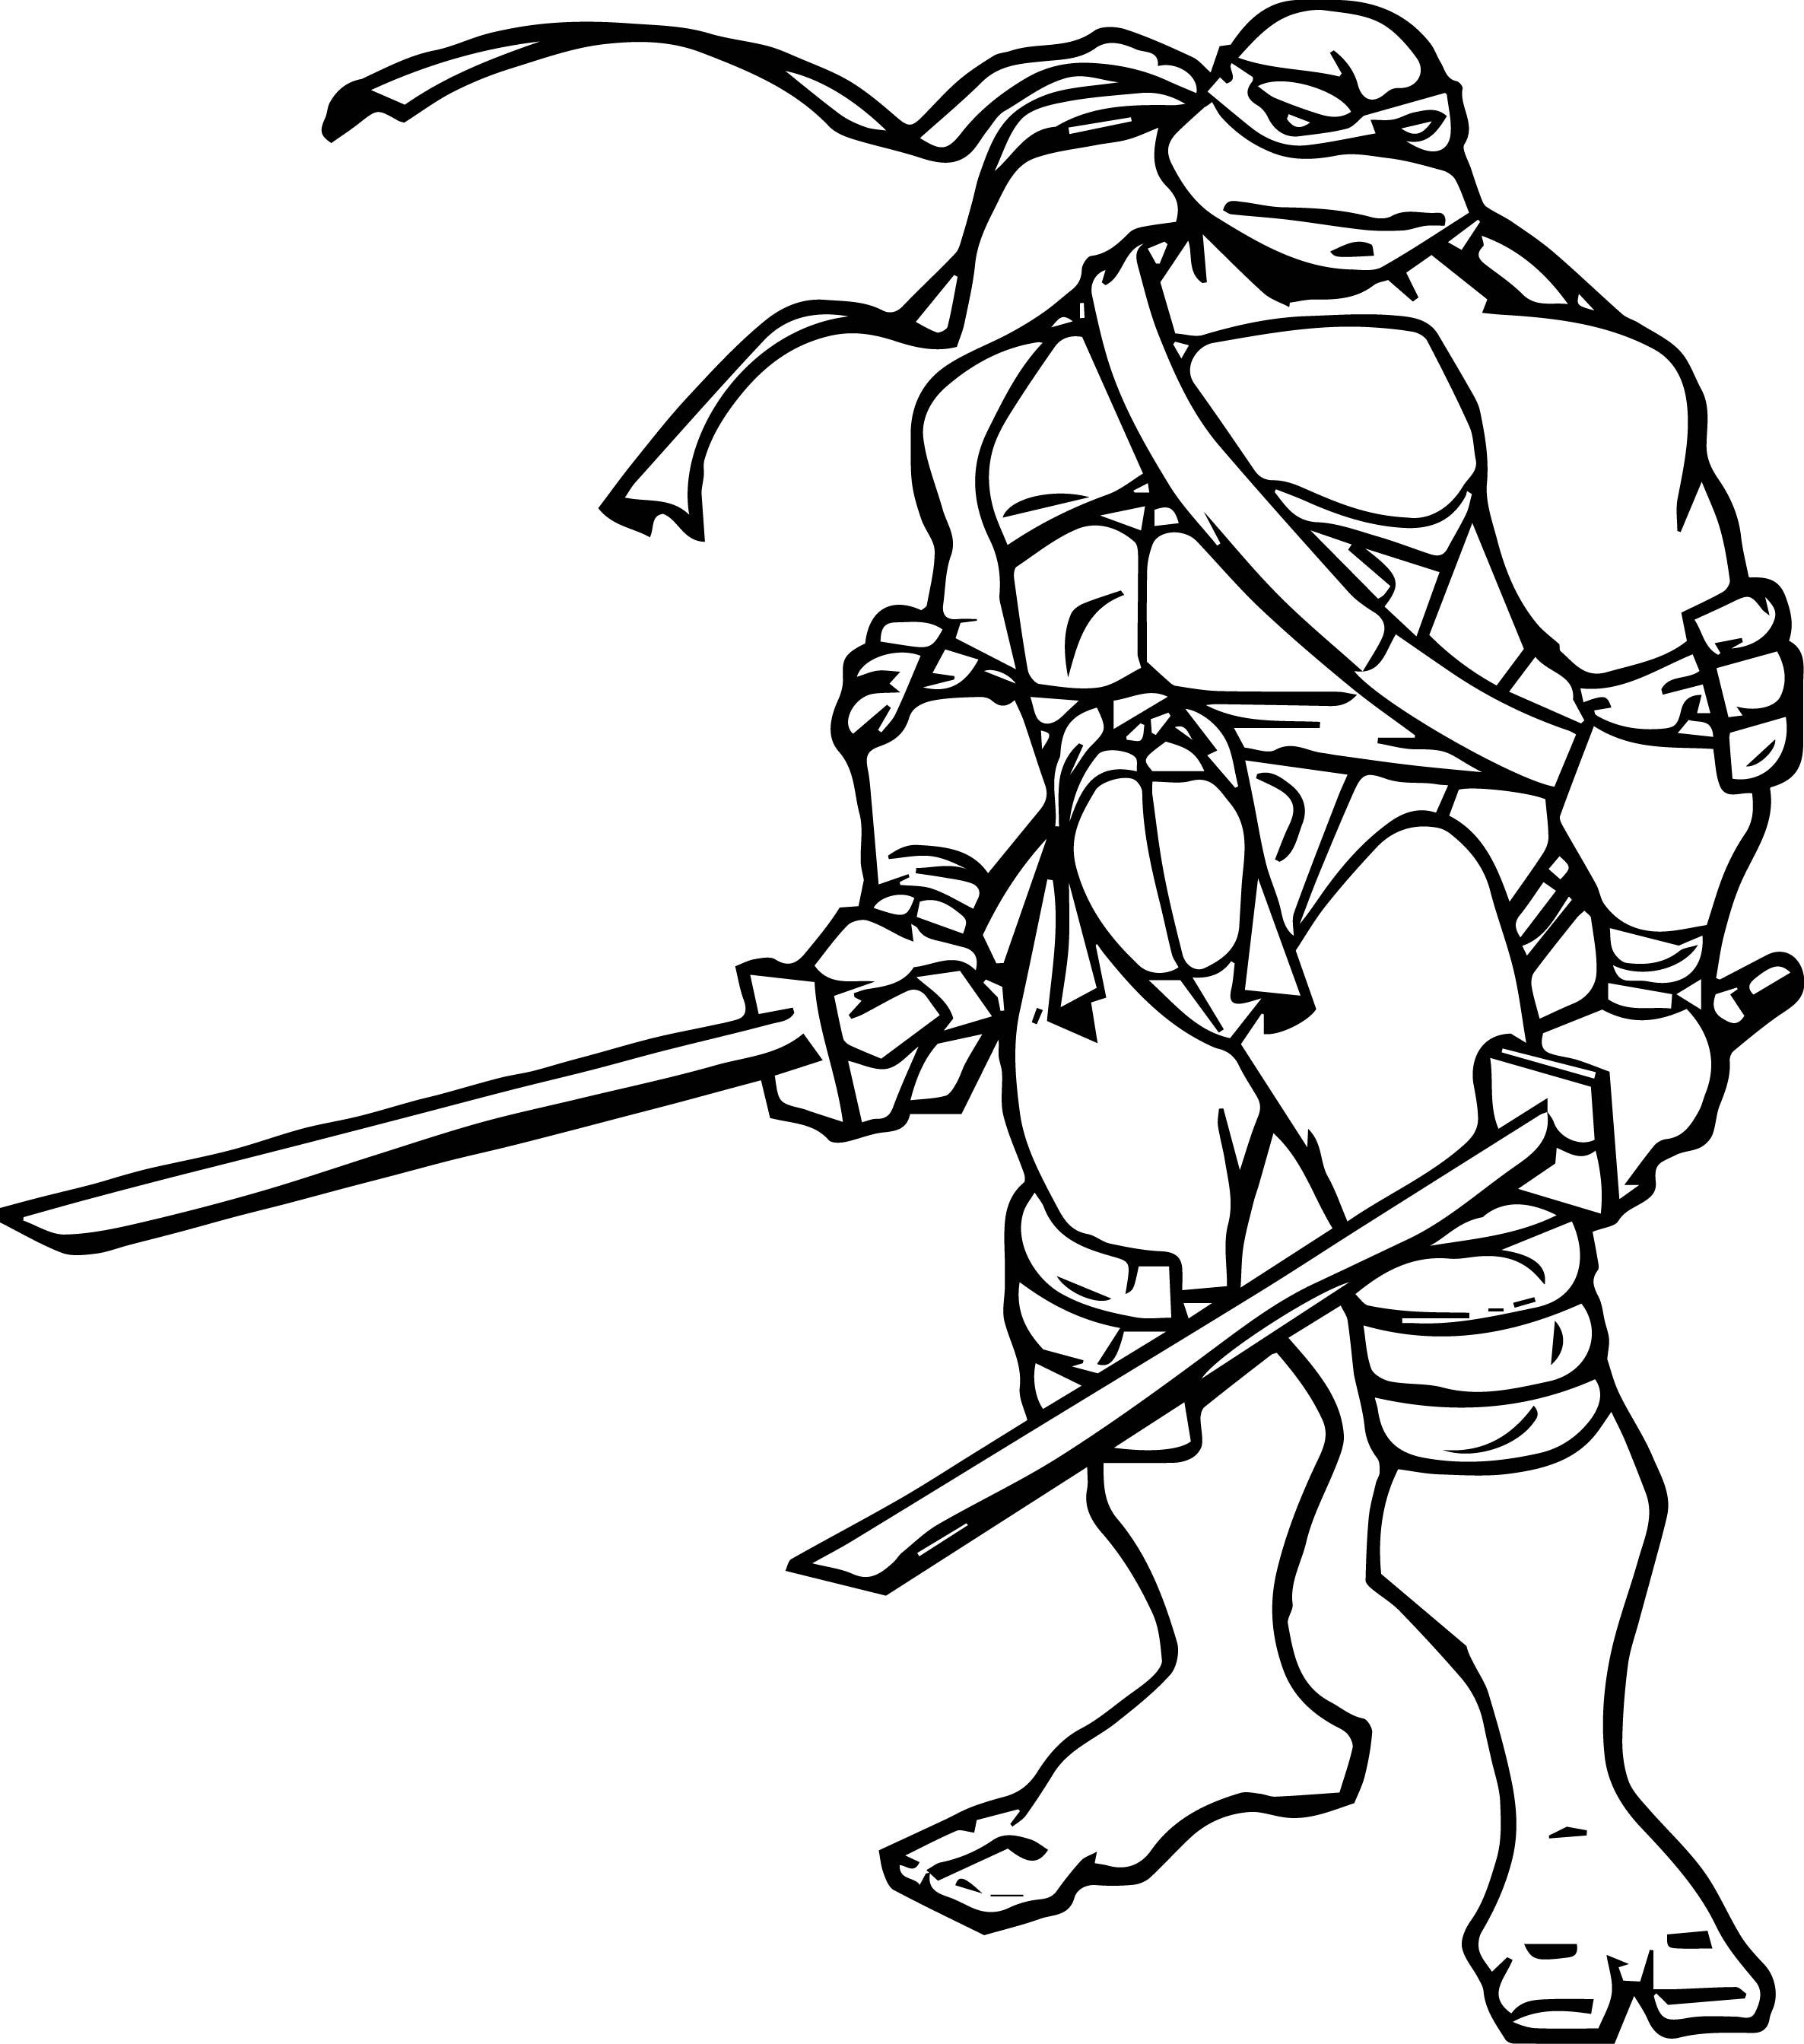 Ninja Turtle Two Blade Coloring Page Wecoloringpage Turtle Coloring Pages Ninja Turtle Coloring Pages Ninja Turtles